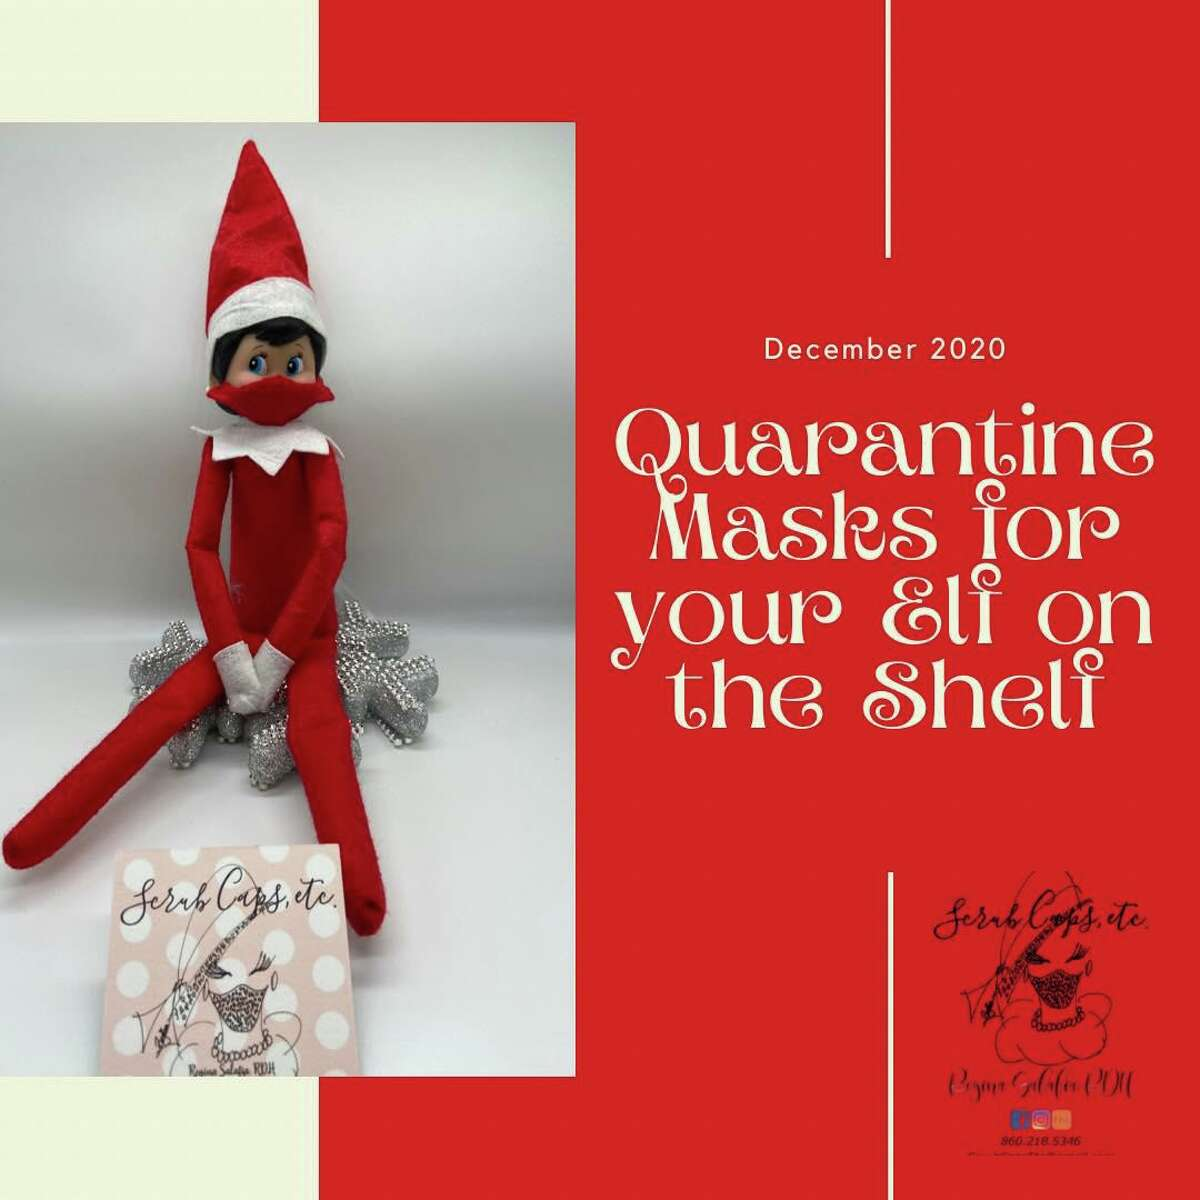 Regina Salafia of Middletown rediscovered her love for sewing in April, when the pandemic forced big changes in everyone's lives. That's when she came up with the idea of quarantine masks placed on The Elf on the Shelf dolls when they first arrive from Santa's workshop.